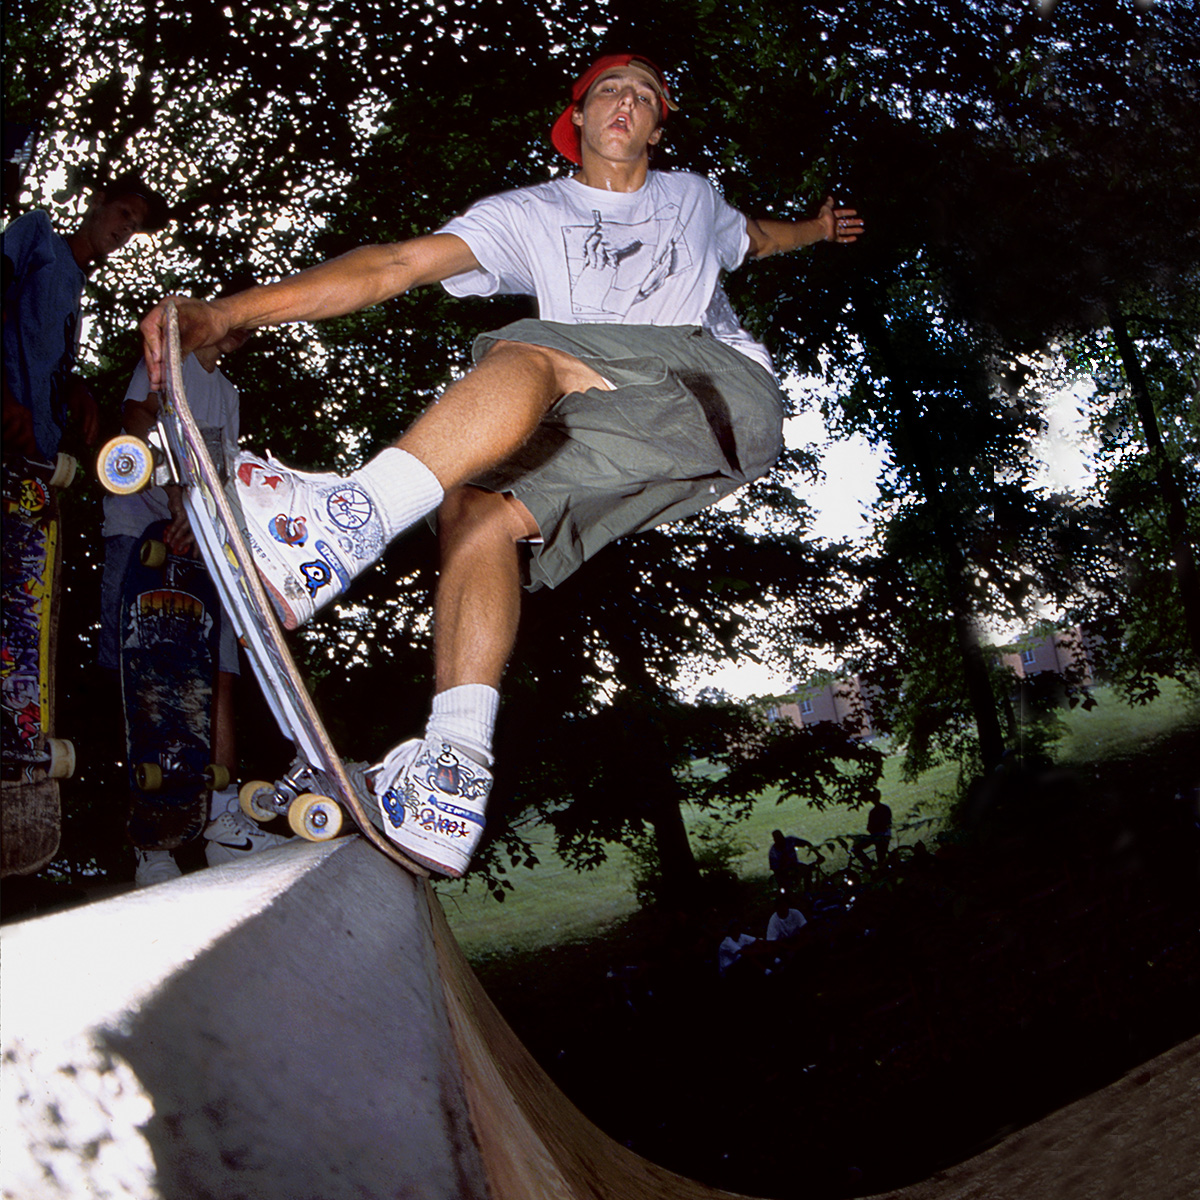 Andy-Howell-Spike-New_Deal_skateboards-RAD_Magazine.jpg